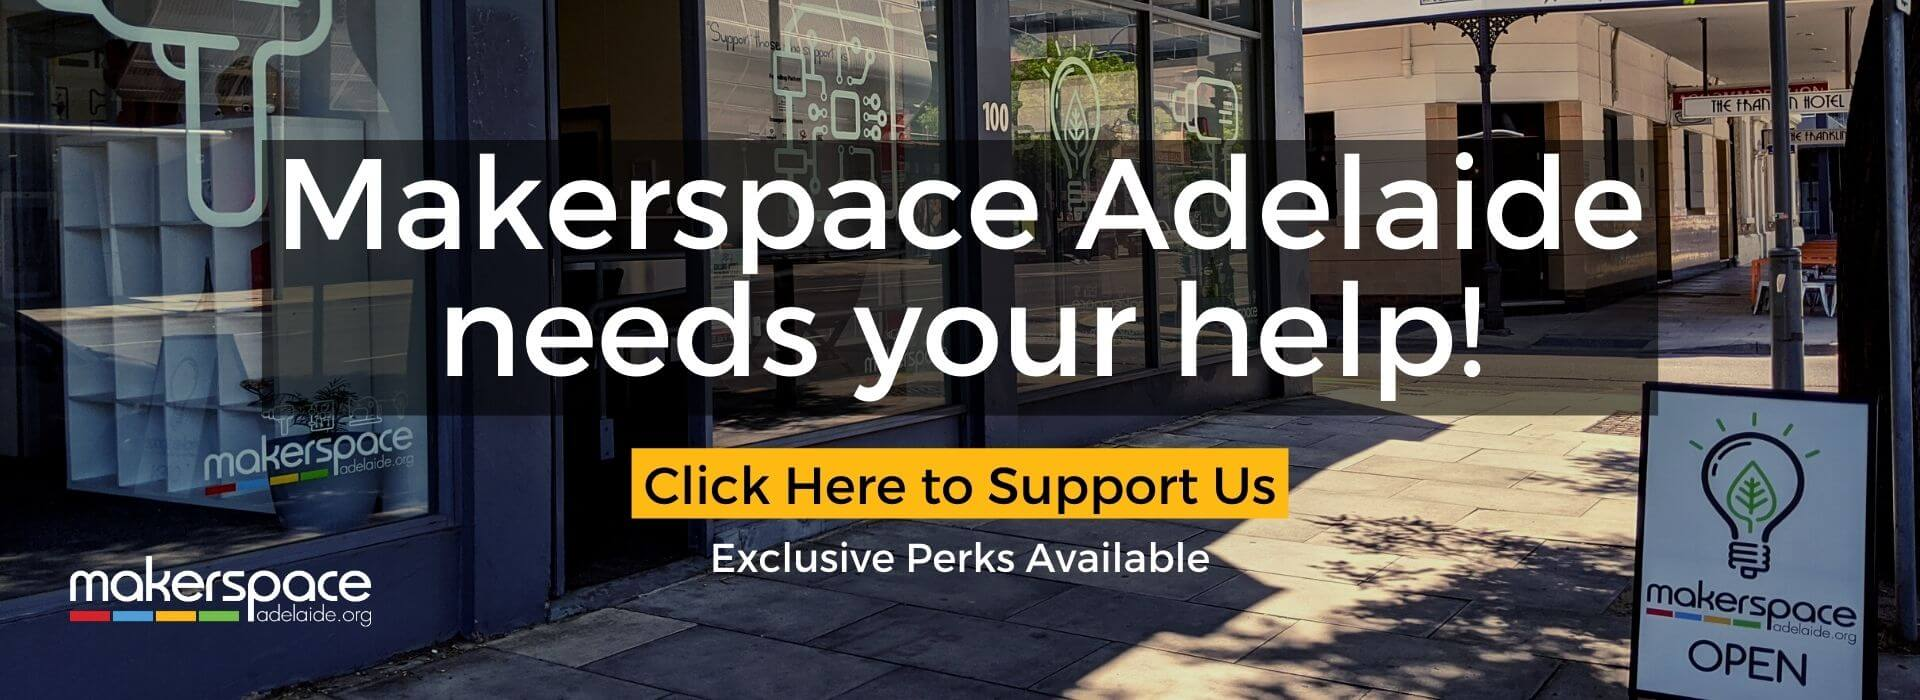 Makerspace Adelaide needs your help! - Fundraising Campaign